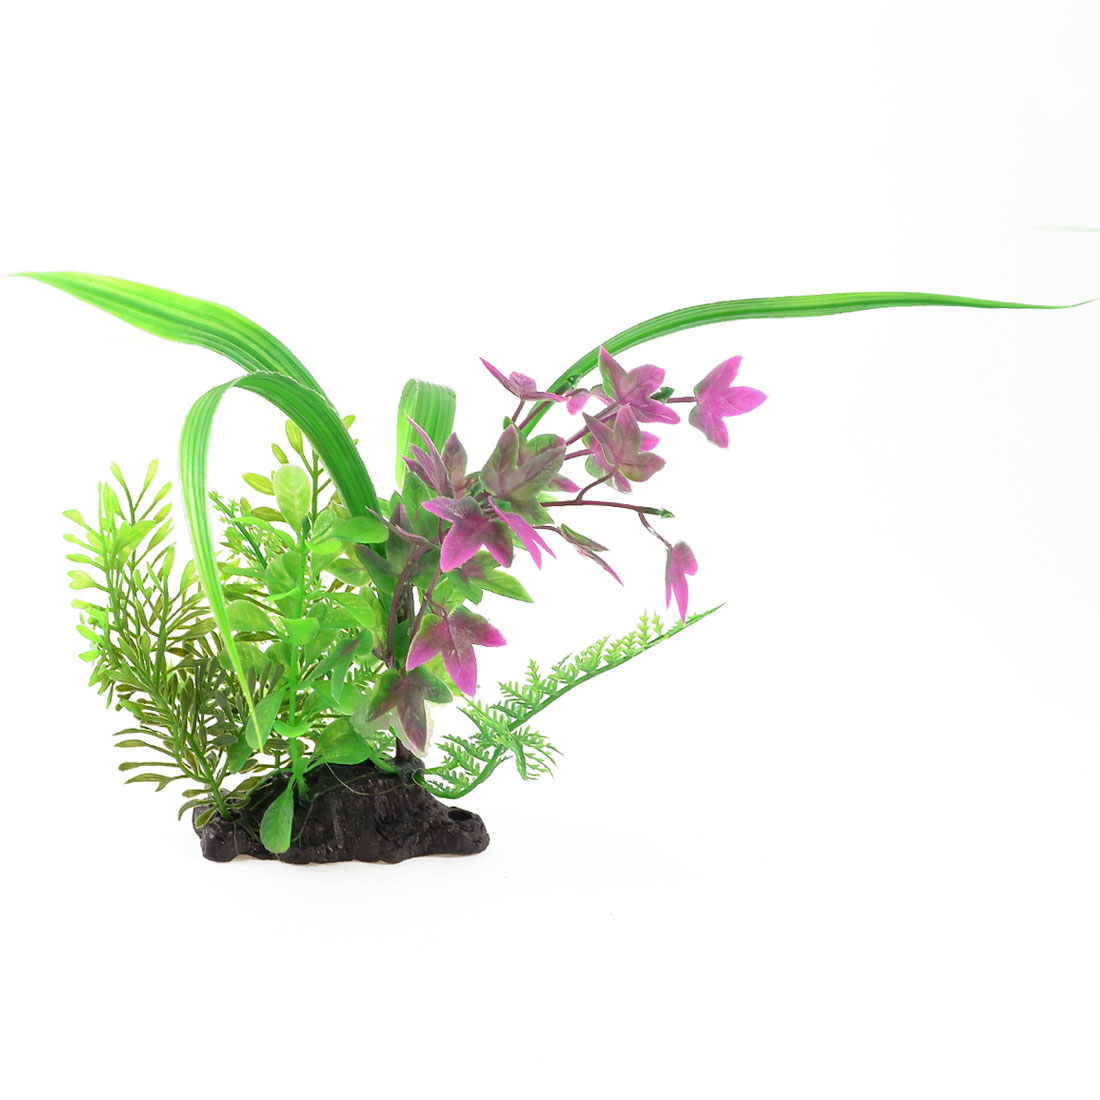 9-4-Fish-Tank-Landscaping-Ornament-Plastic-Water-Grass-Plants-Green-Violet